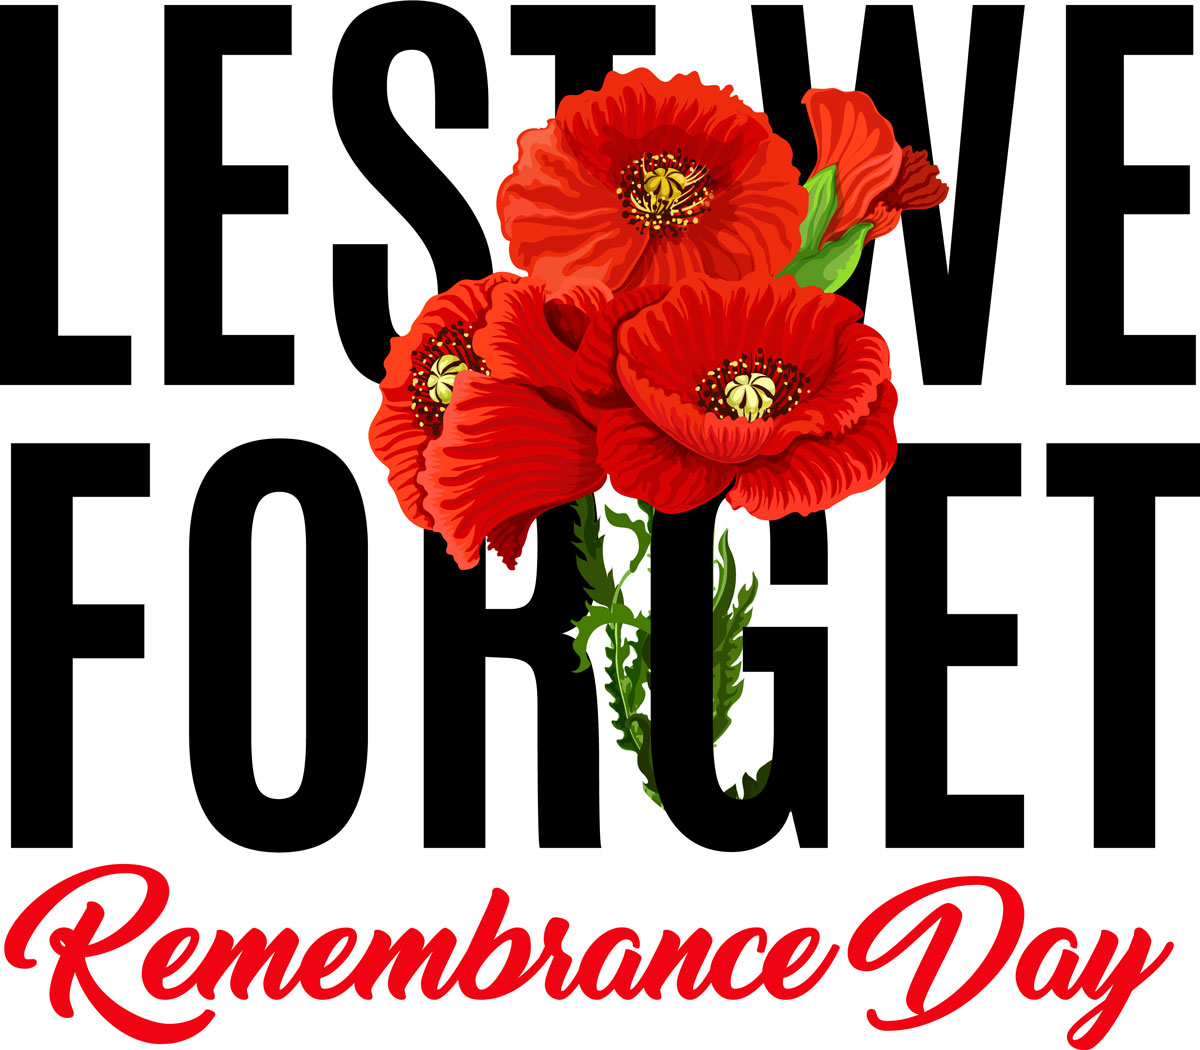 Remembrance-Day-vectorstock_20646017